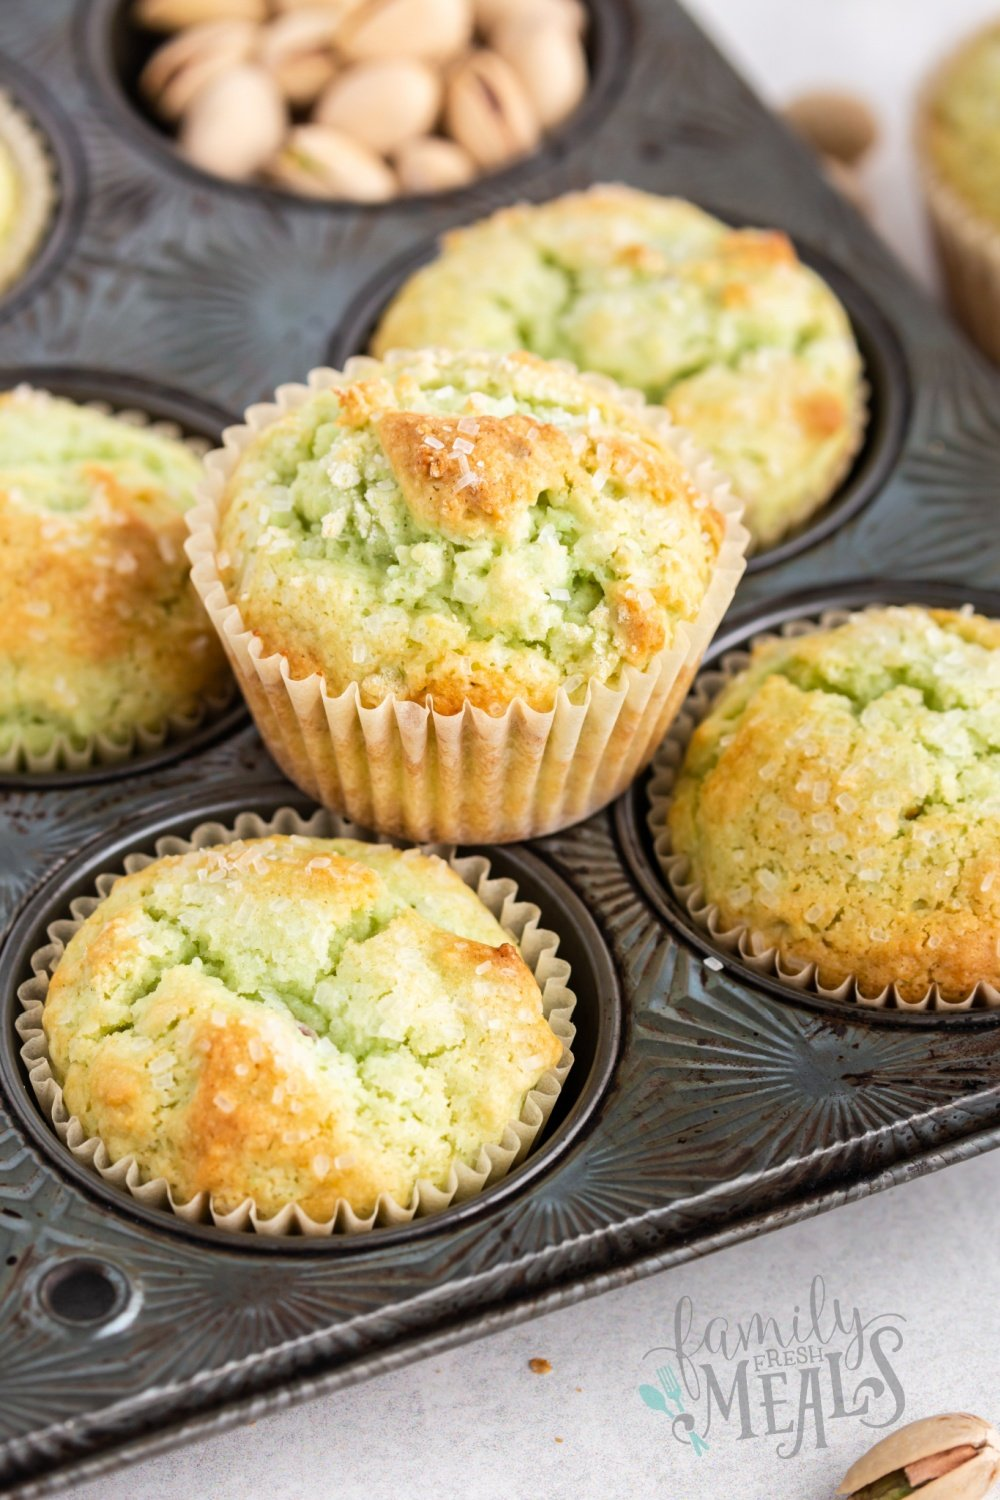 Flavorful and fun, these green Pistachio Muffins are effortless to make and you also have the option of adding real pistachios if you wish. via @familyfresh